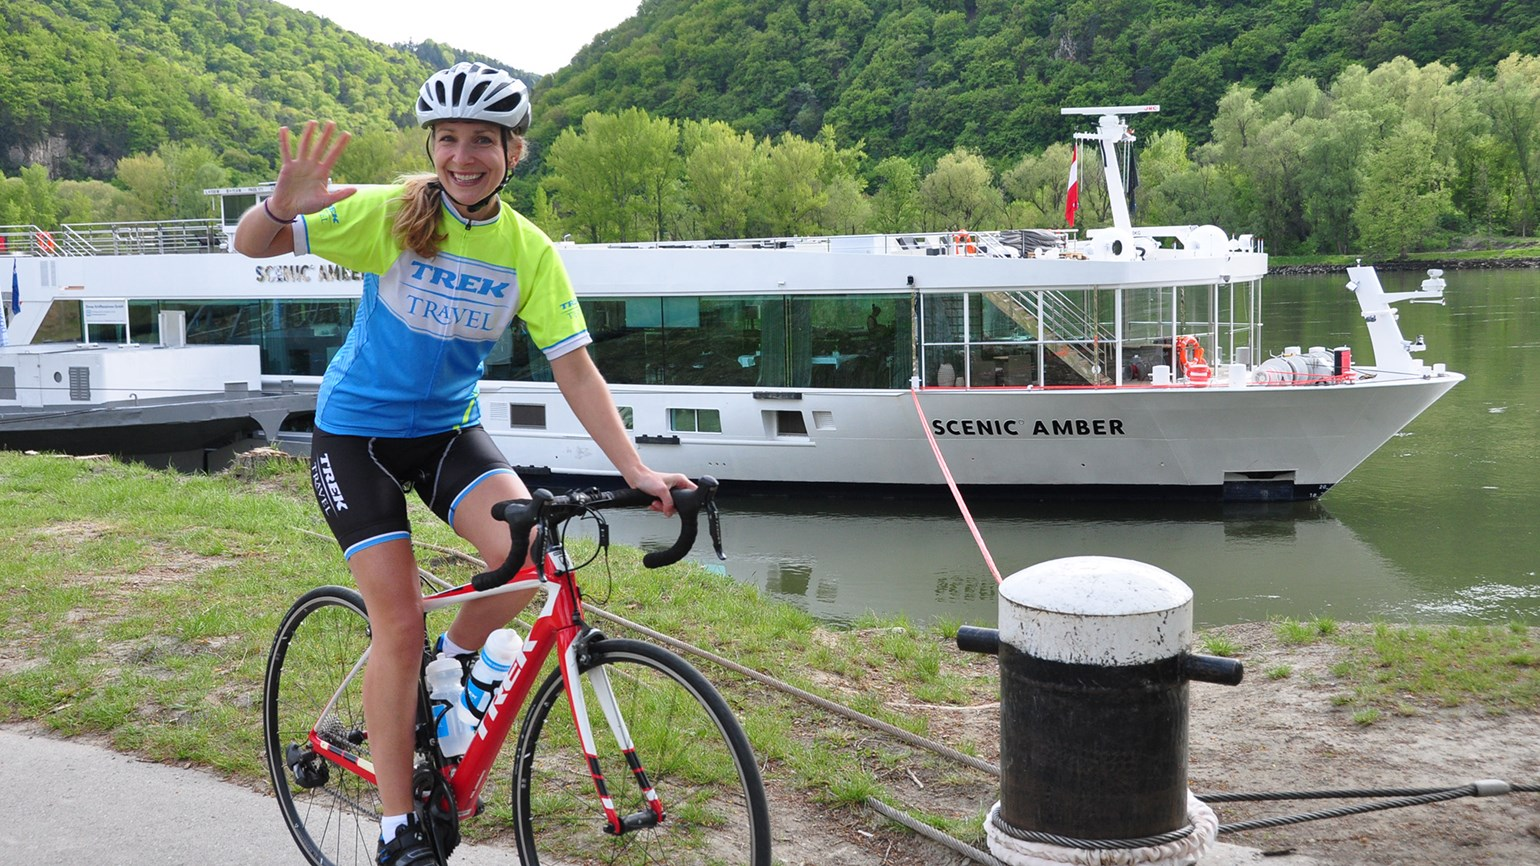 Scenic renews partnership with cycling company Trek Travel